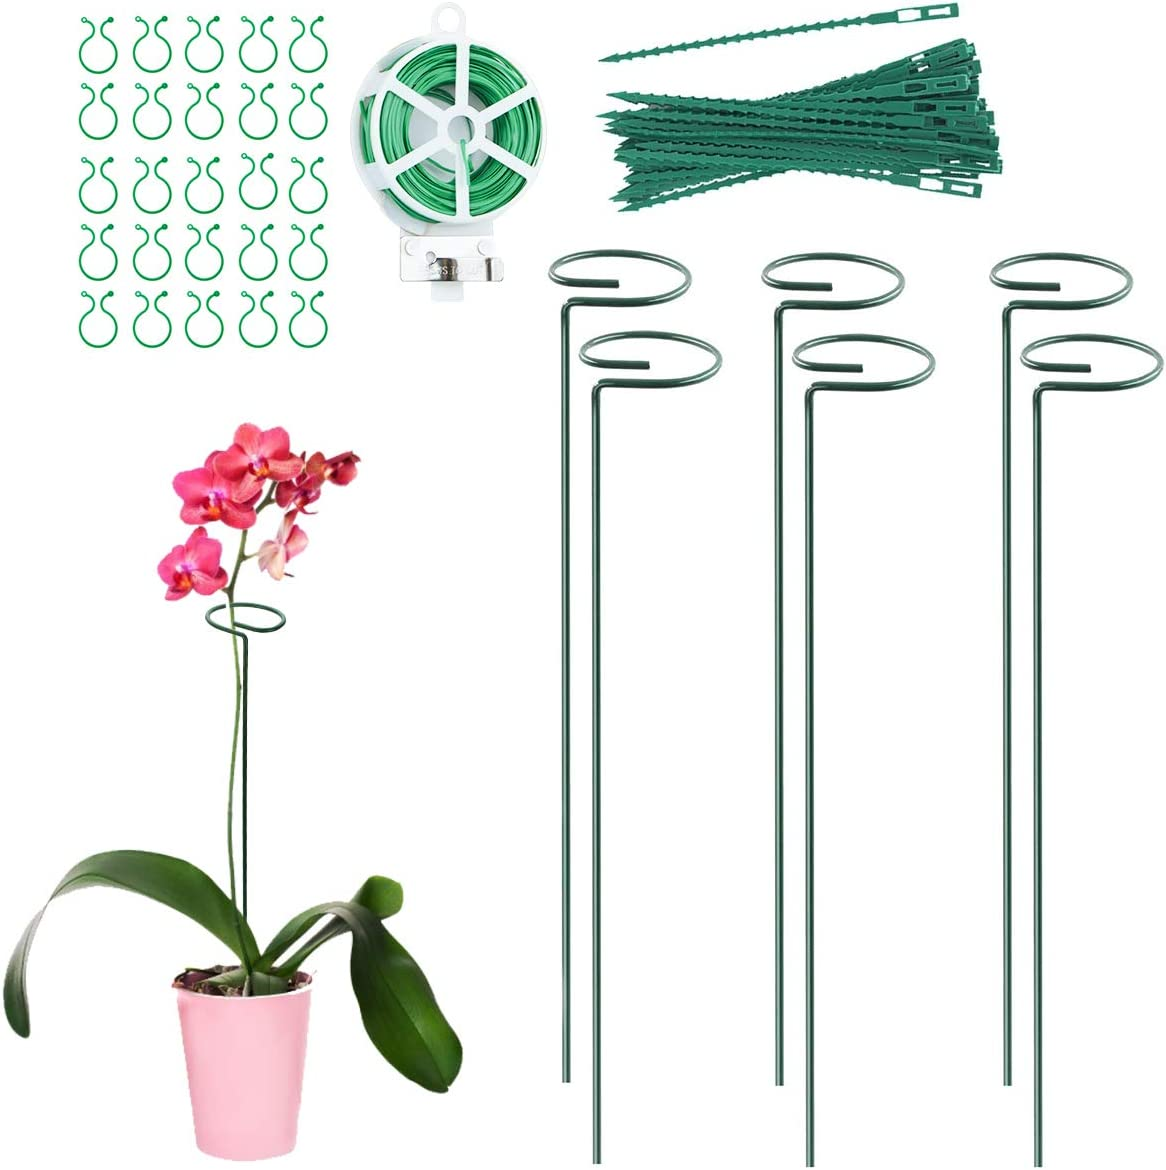 JUSONEY Garden Plant Stakes, 6 Pcs Single Stem Support Stake Plant Cage Support Rings, 20Pcs Clips and Twist Ties, 98FT Garden Management Strips,Perfect for Tomatoes Orchid Lily Peony Rose Flower Stem